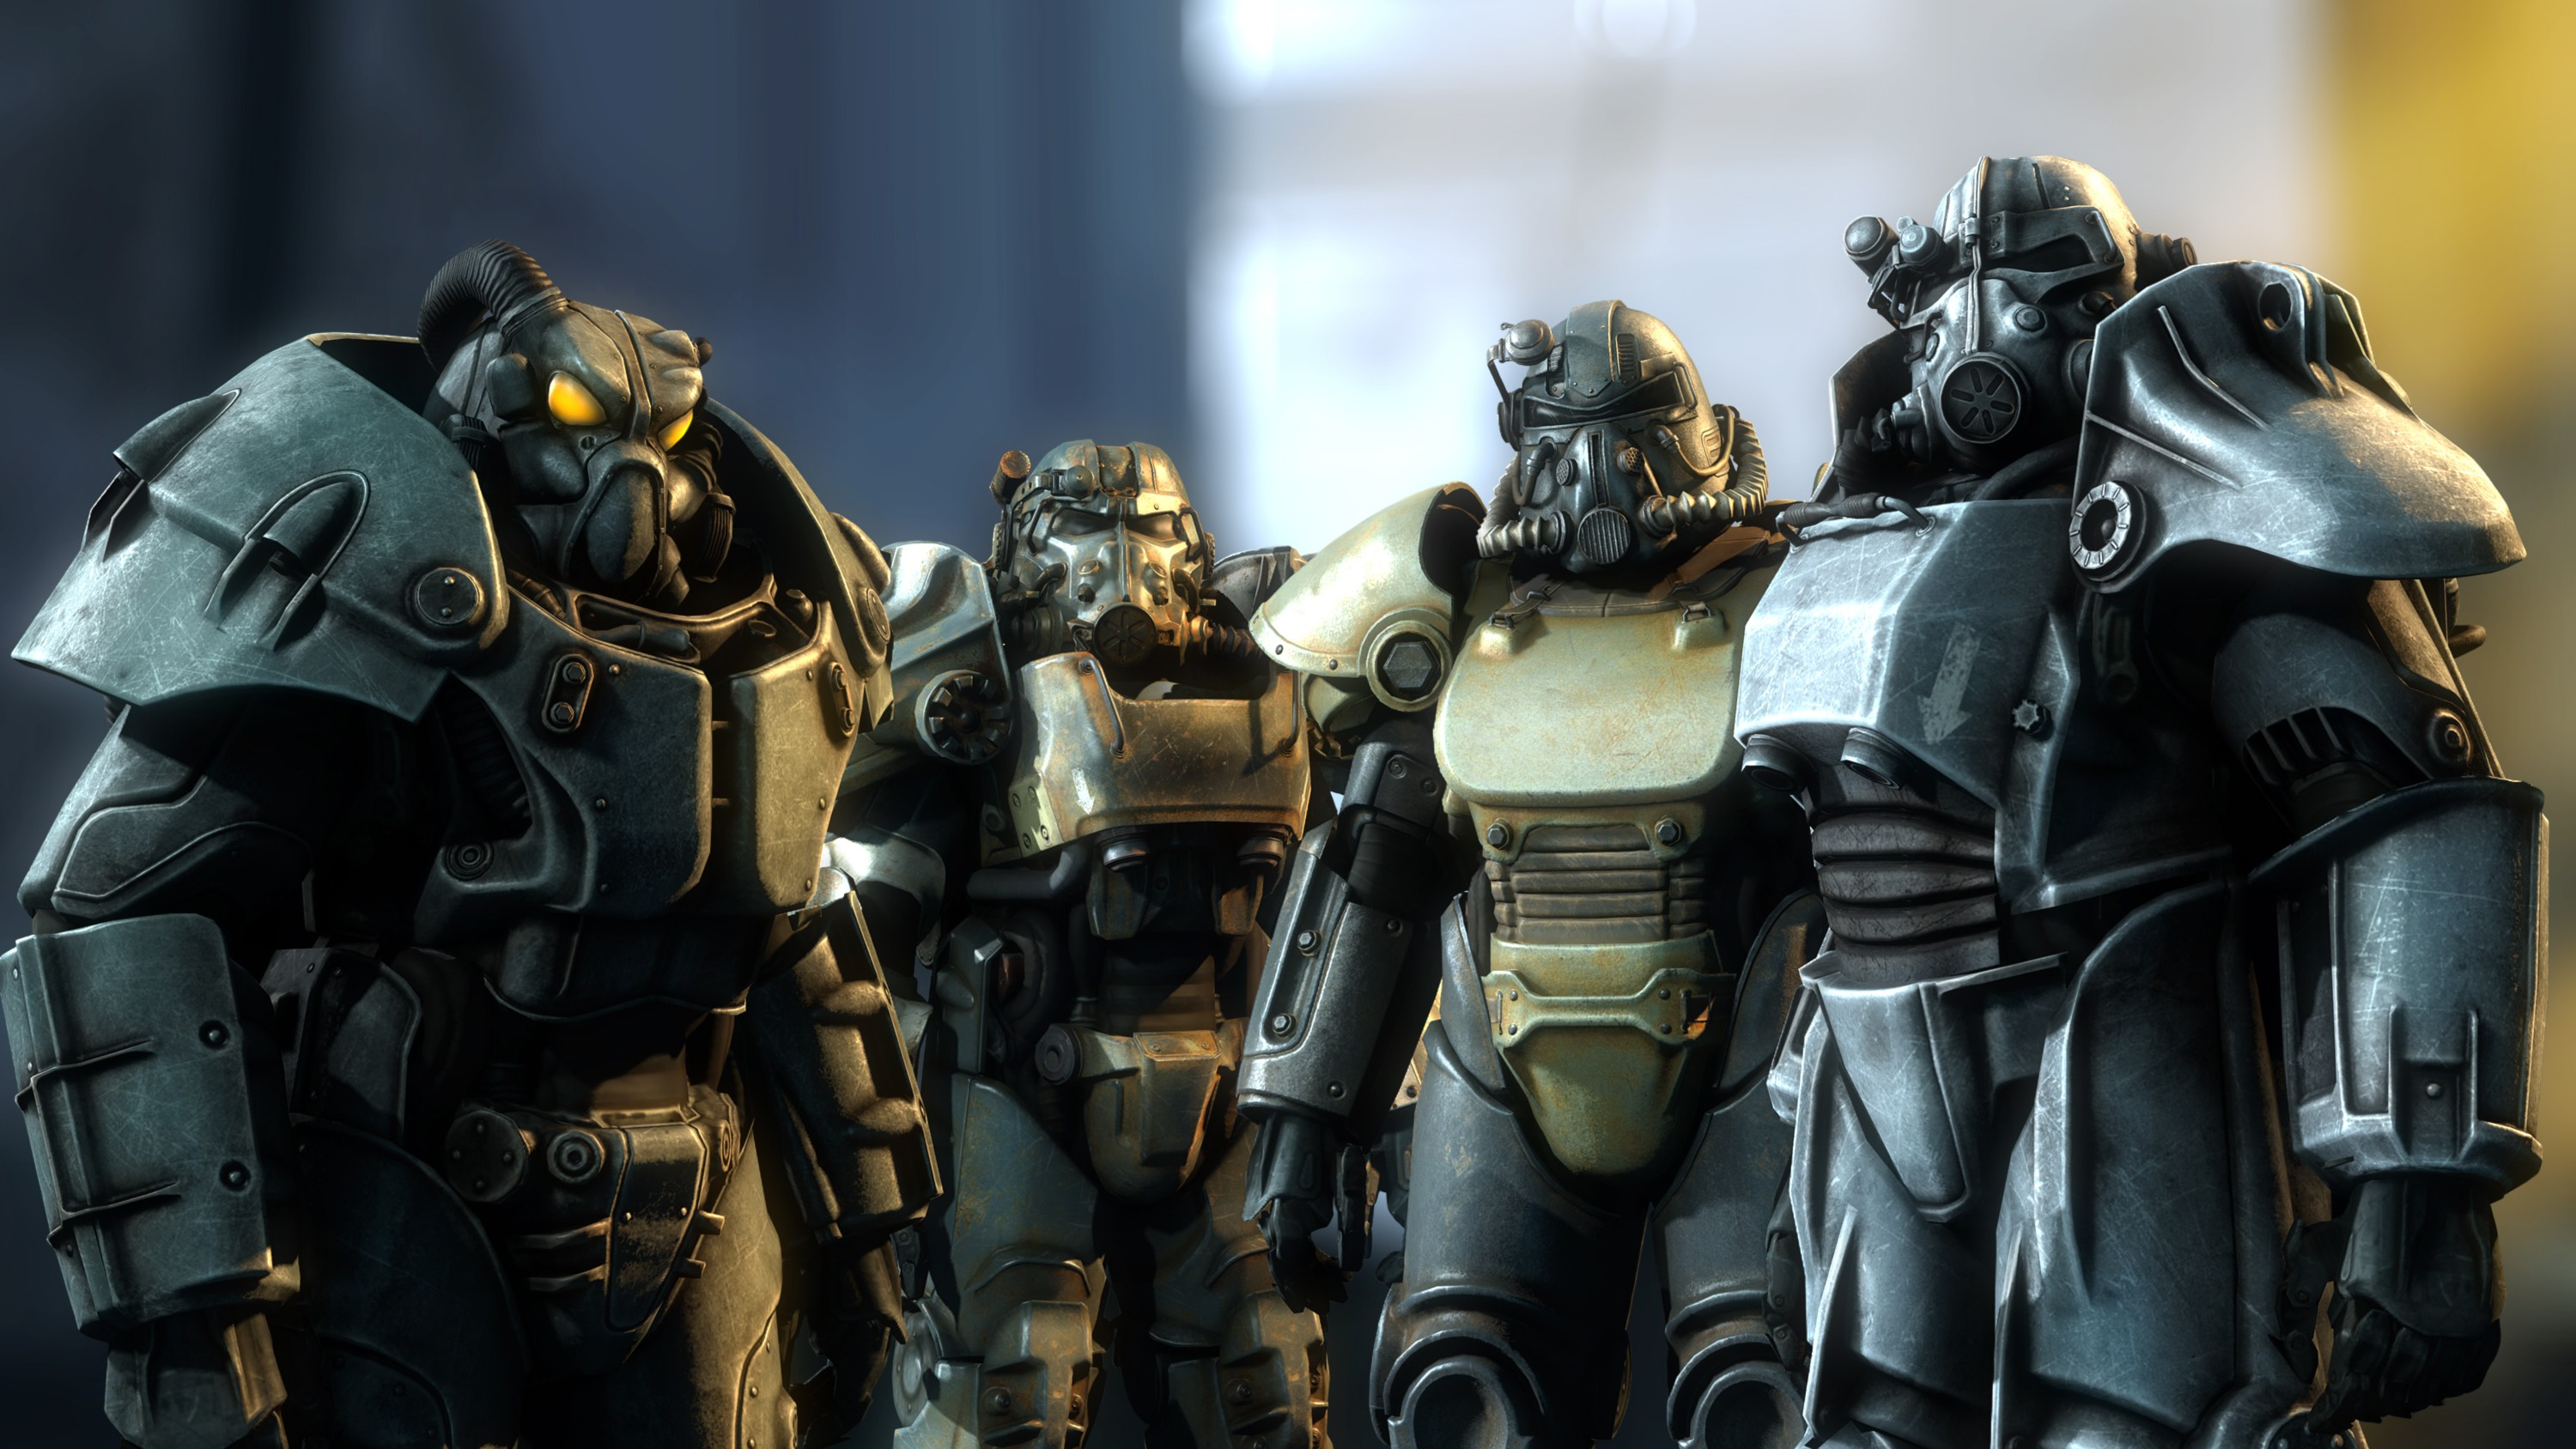 Fallout 4 Power Armor wallpaper ·① Download free cool High ...